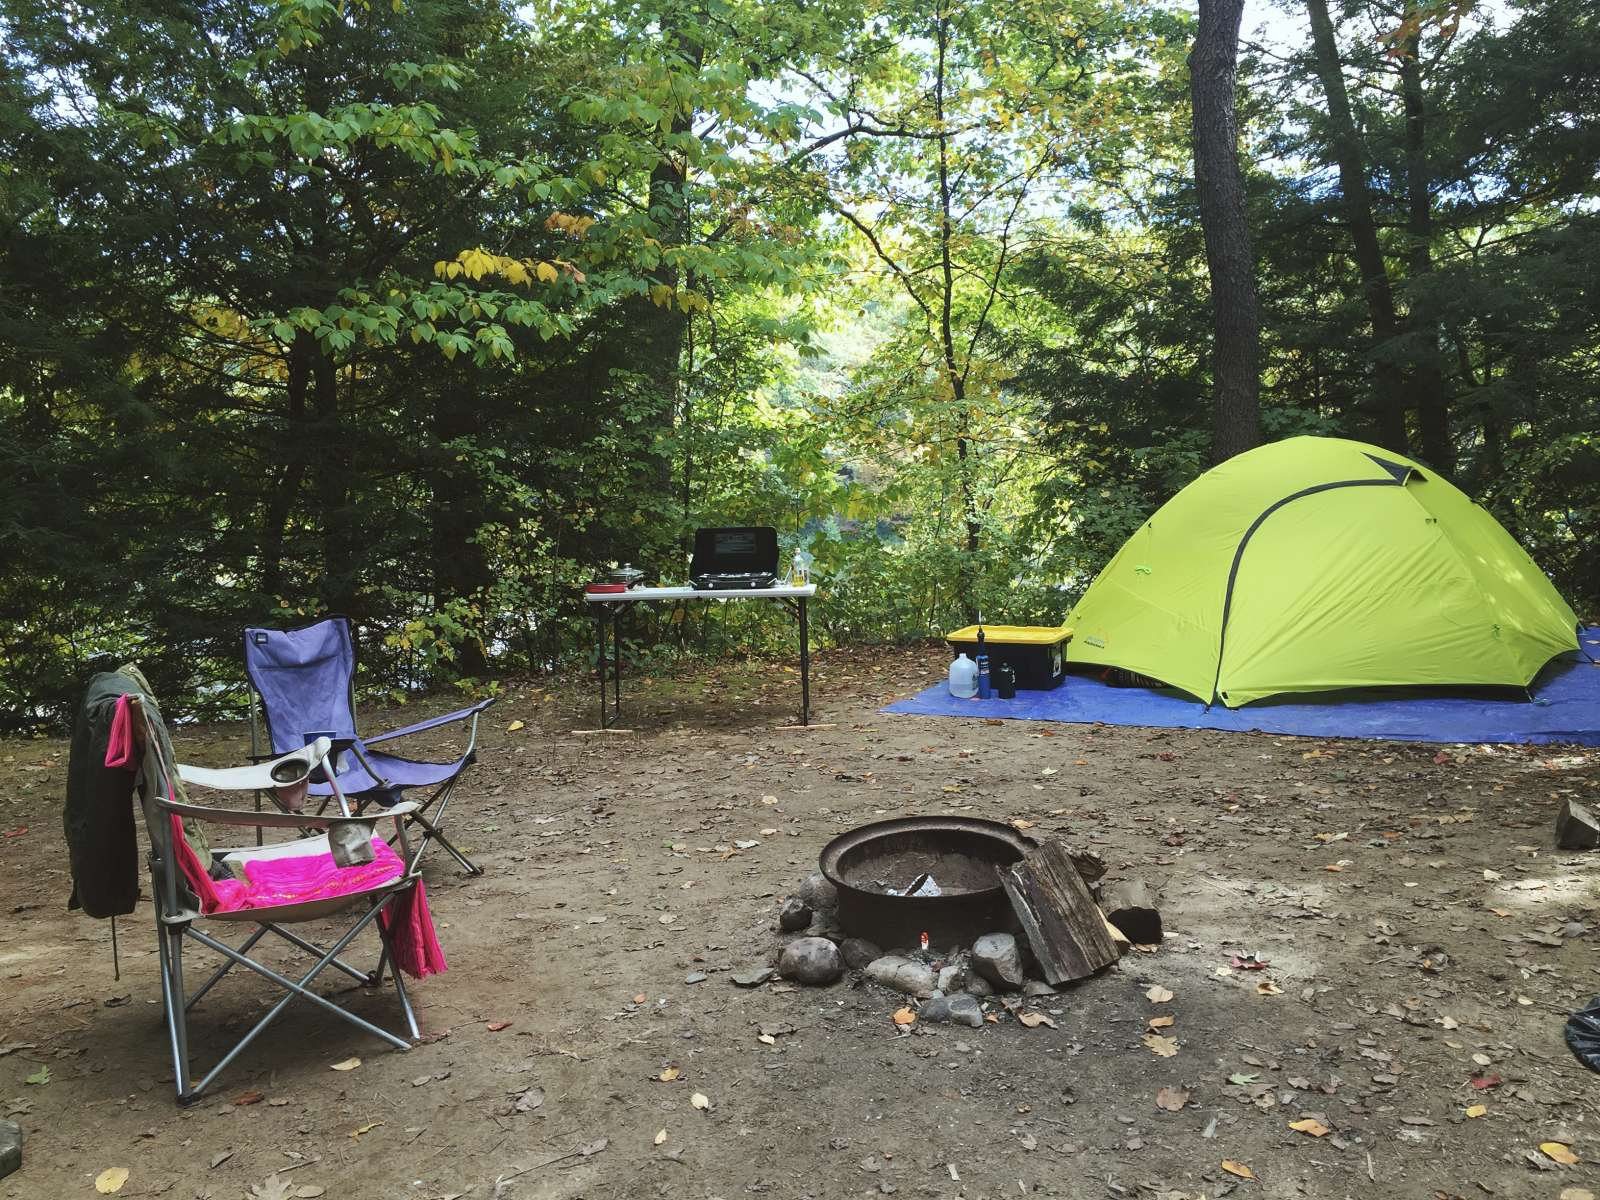 Dingmans Campground, Delaware Water Gap, PA: 6 Hipcamper Reviews And on